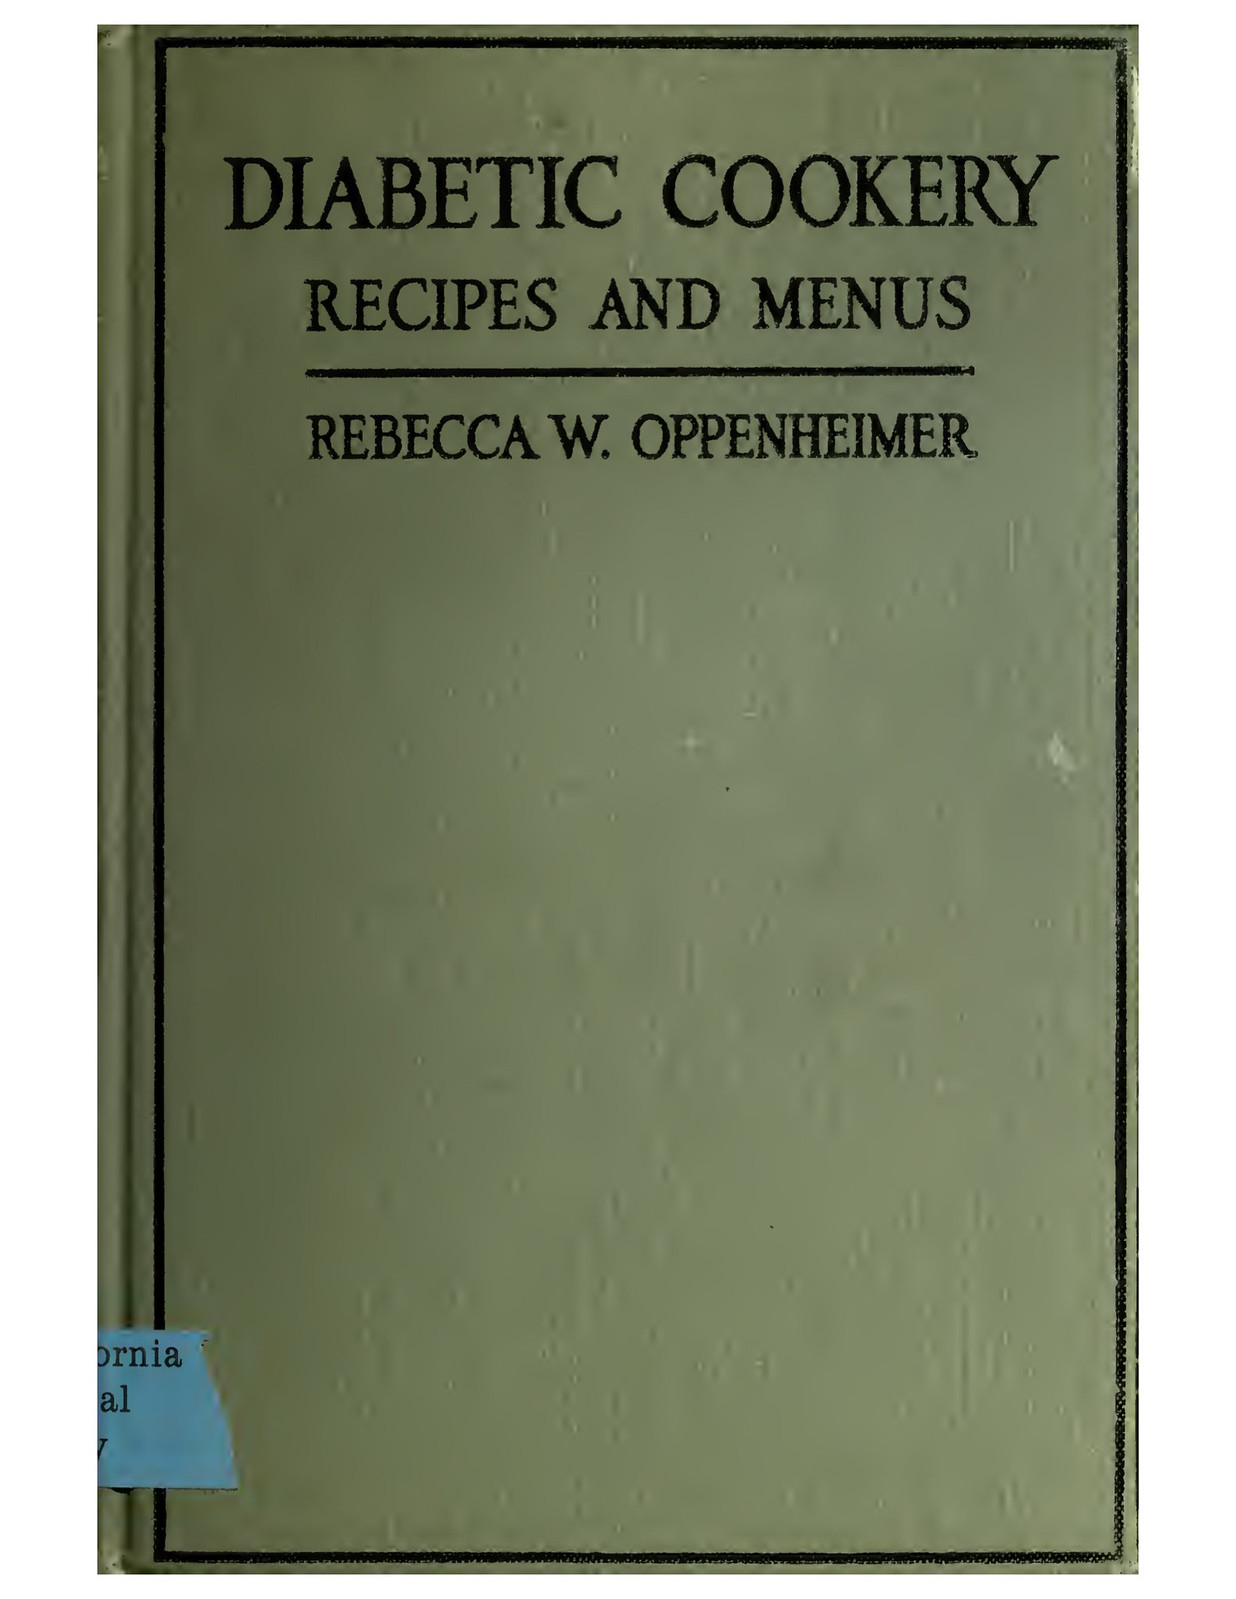 2017.11.23 Diabetic Cookery, 1917, via OpenLibrary 183